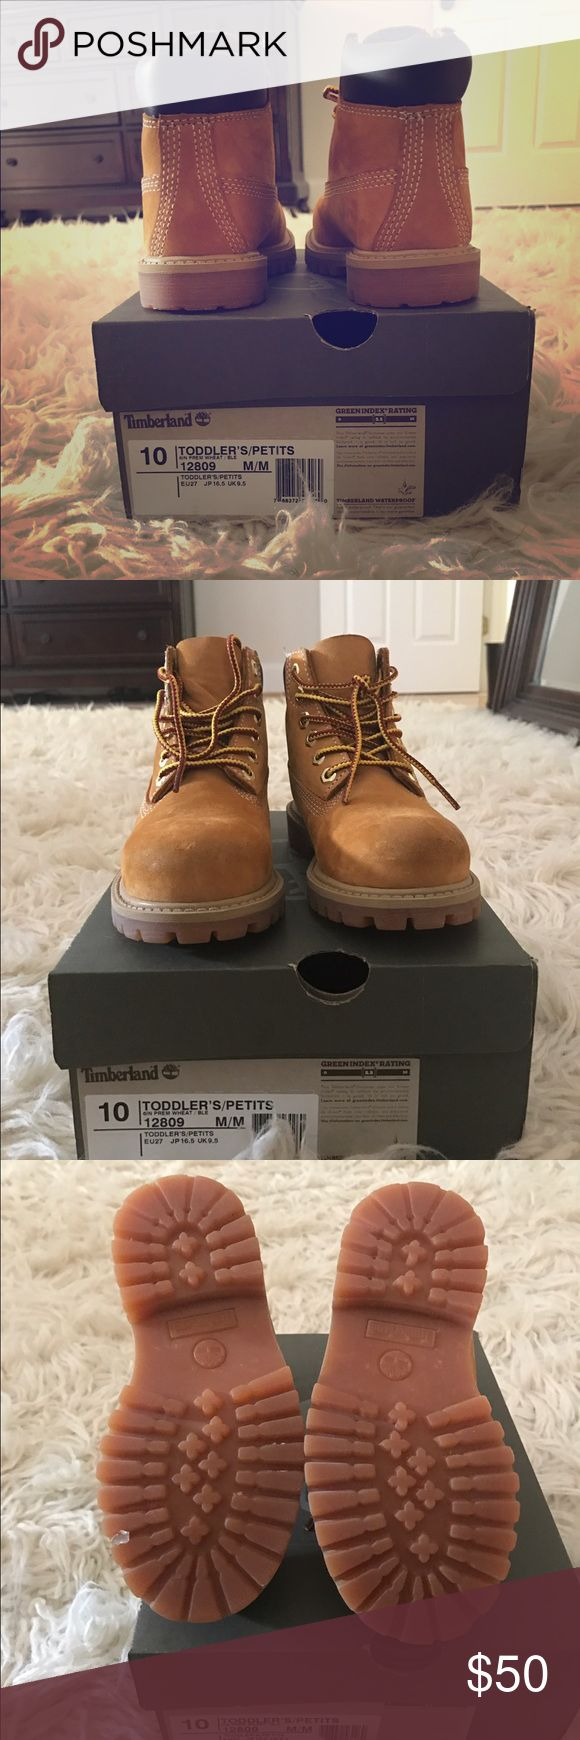 Kids Timberland Boots Excellent condition worn only a handful of times! Timberland Shoes Boots